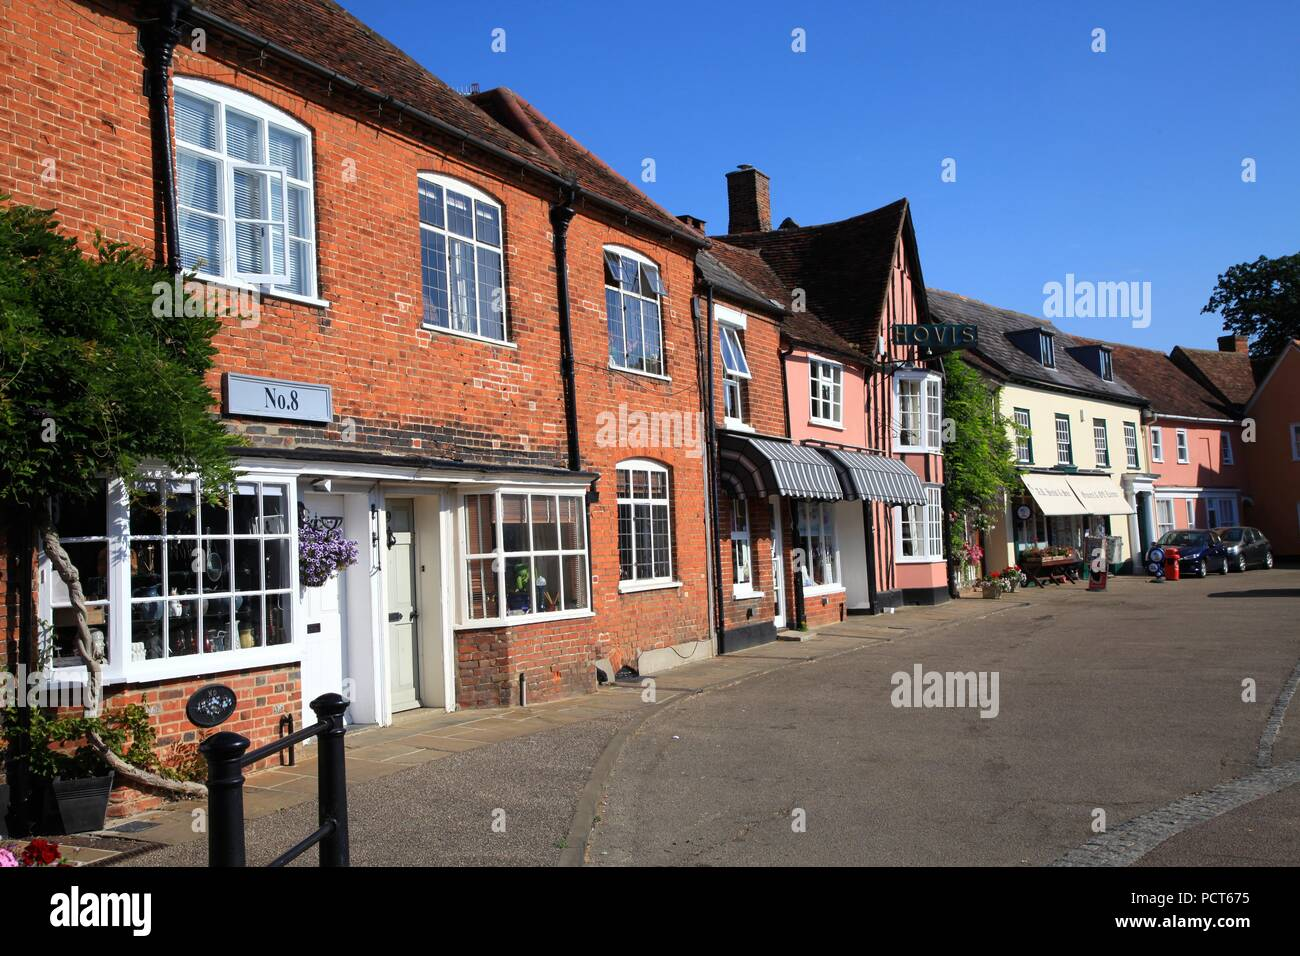 Half timbered Medieval buildings in Lavenham Suffolk UK - Stock Image